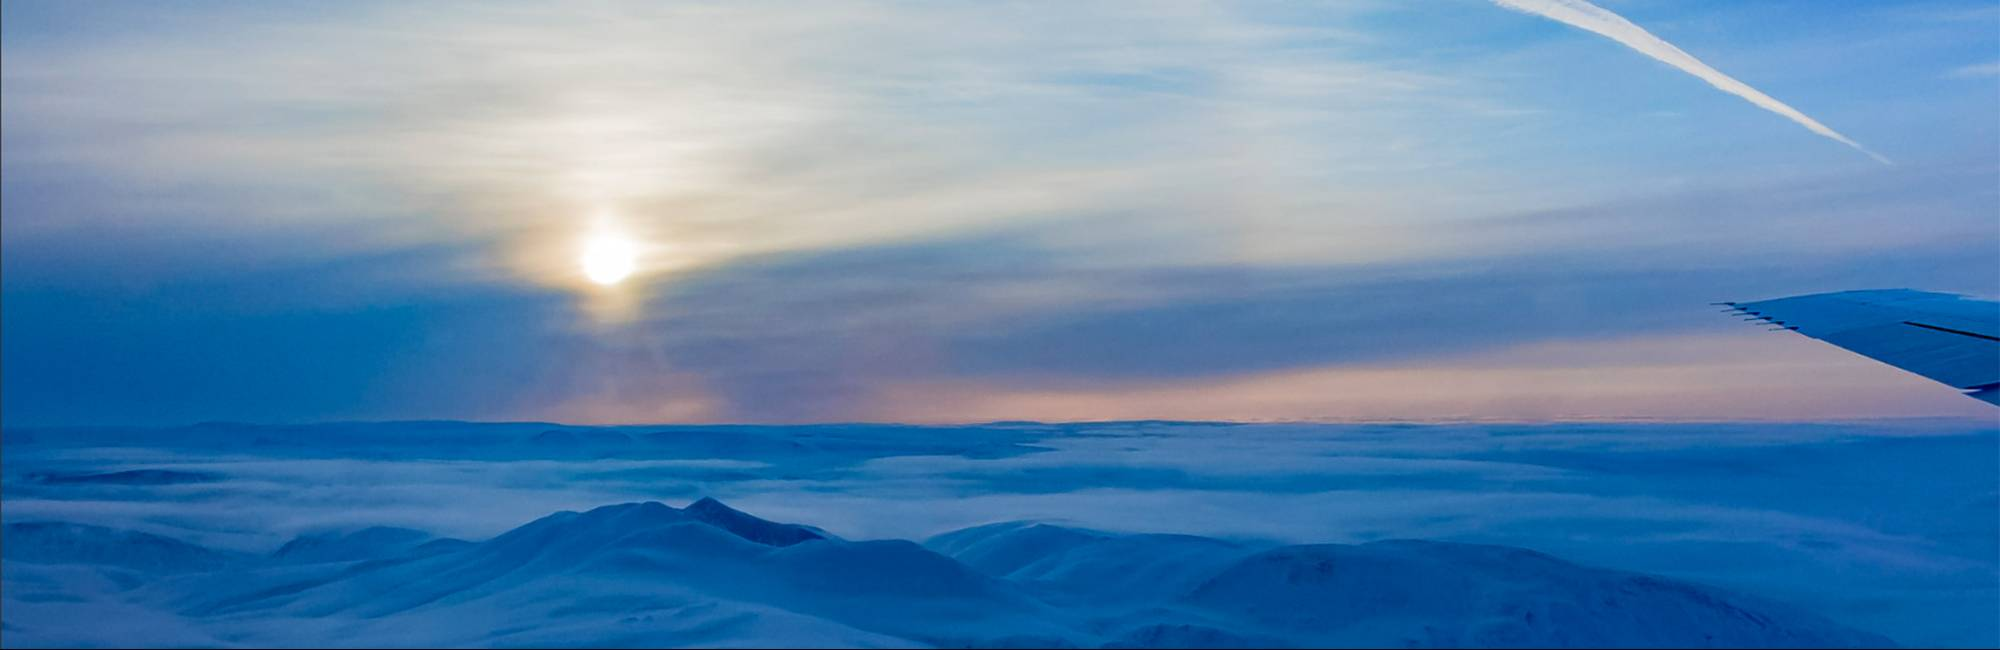 Photo looking out of a NASA DC-8 flying over the Canadian Arctic, with a view of the sun, clouds, and icy mountains.